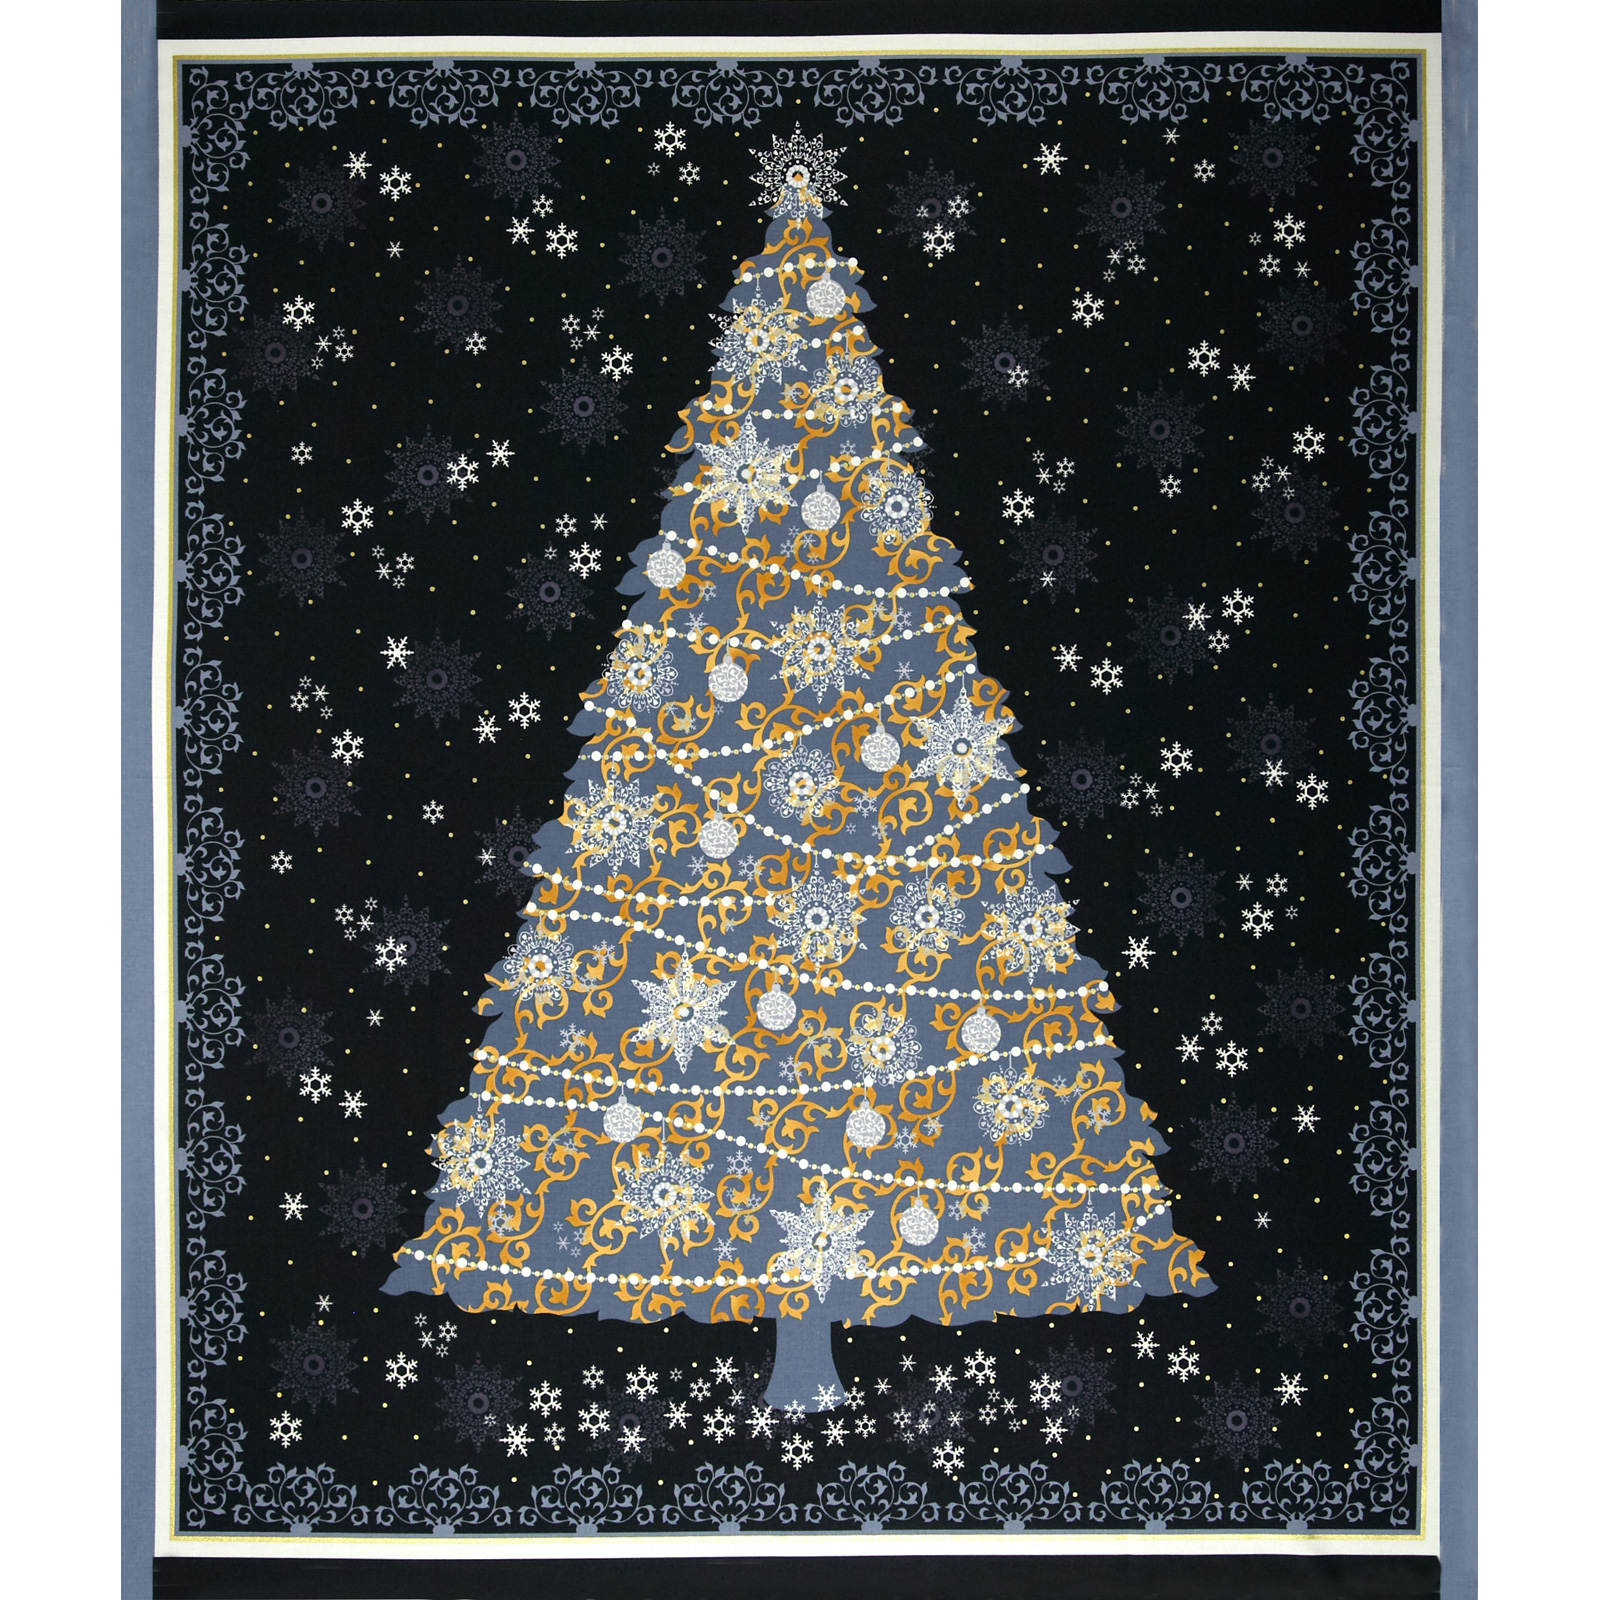 Celebrate the Season Metallic Christmas Tree Panel Black